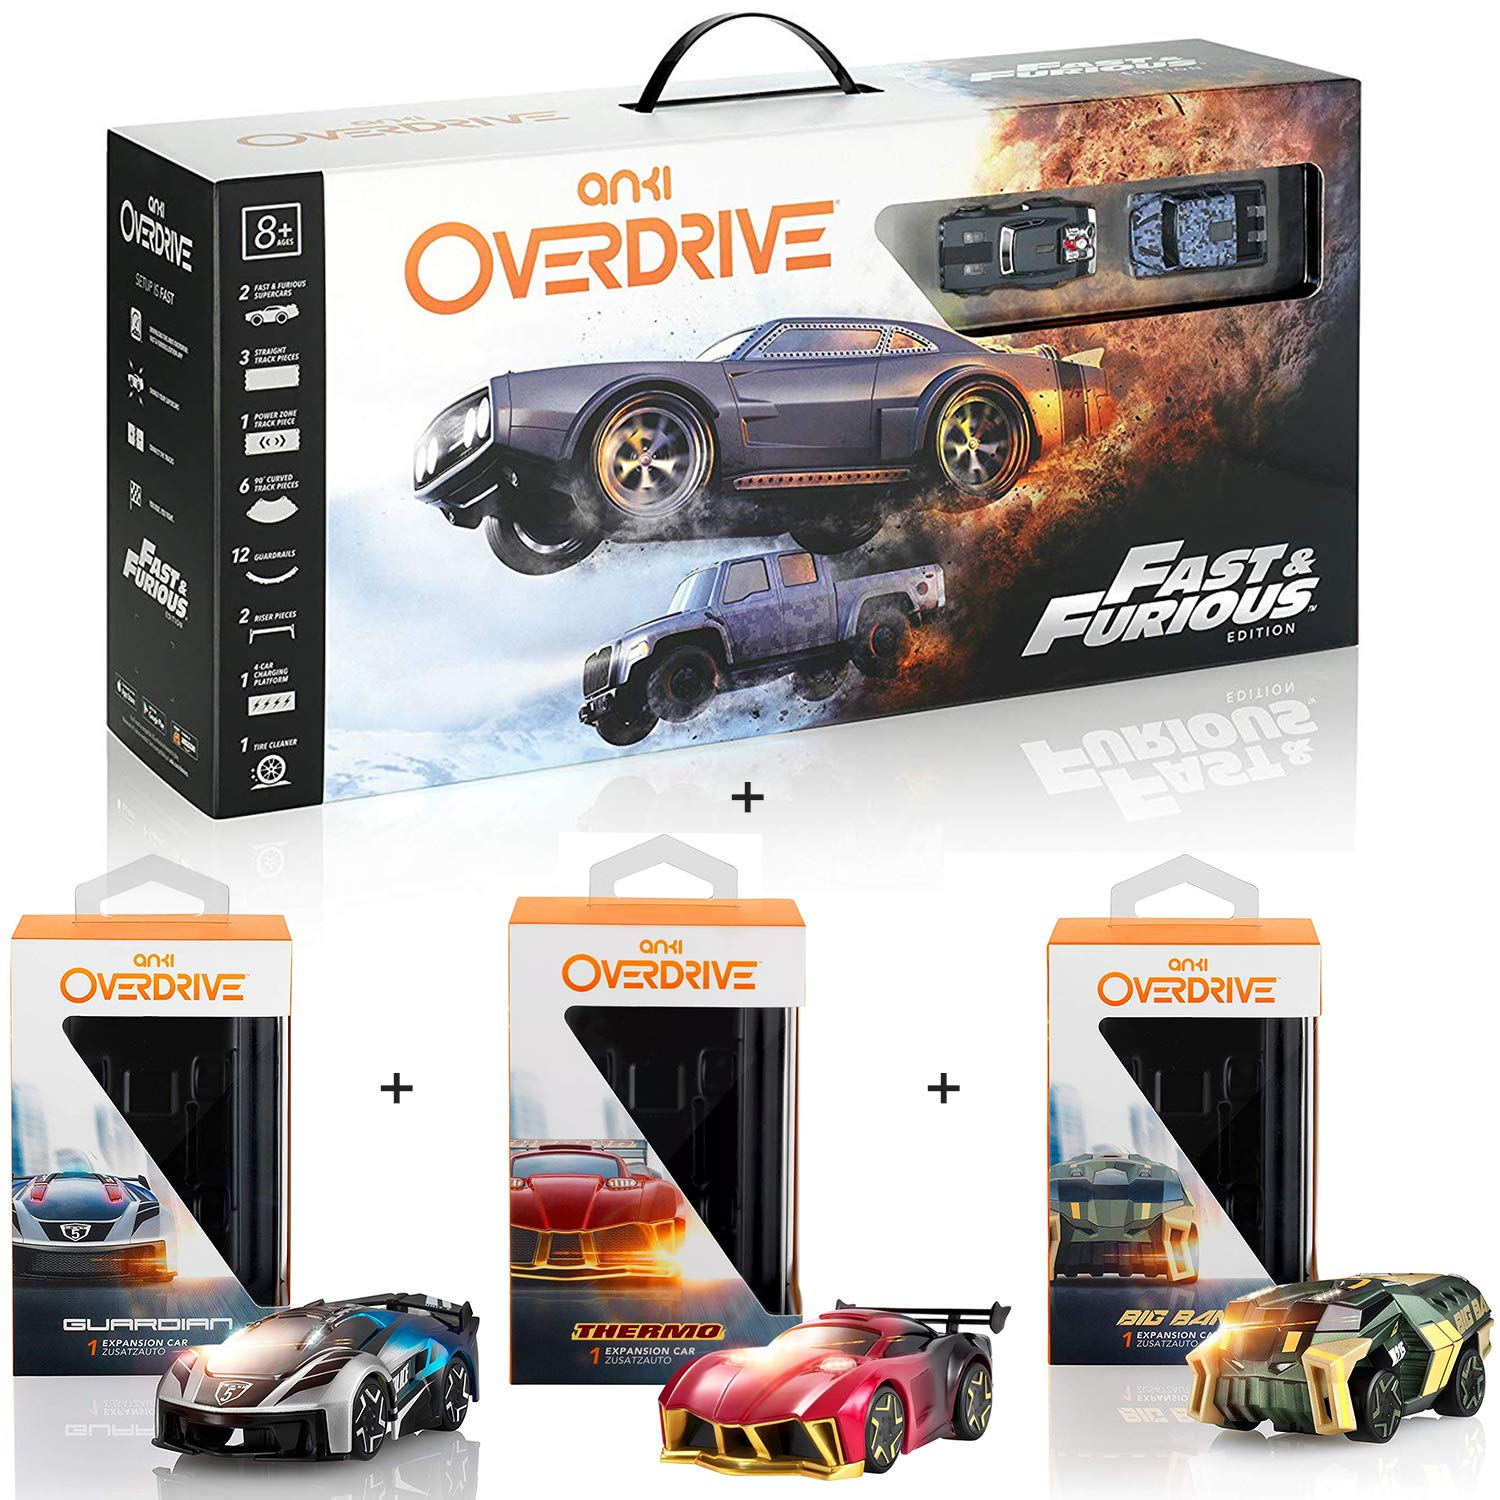 Anki Overdrive Fast & Furious Edition + Big Bang, Guardian, Thermo Expansion Cars - $89.96 + Free Shipping